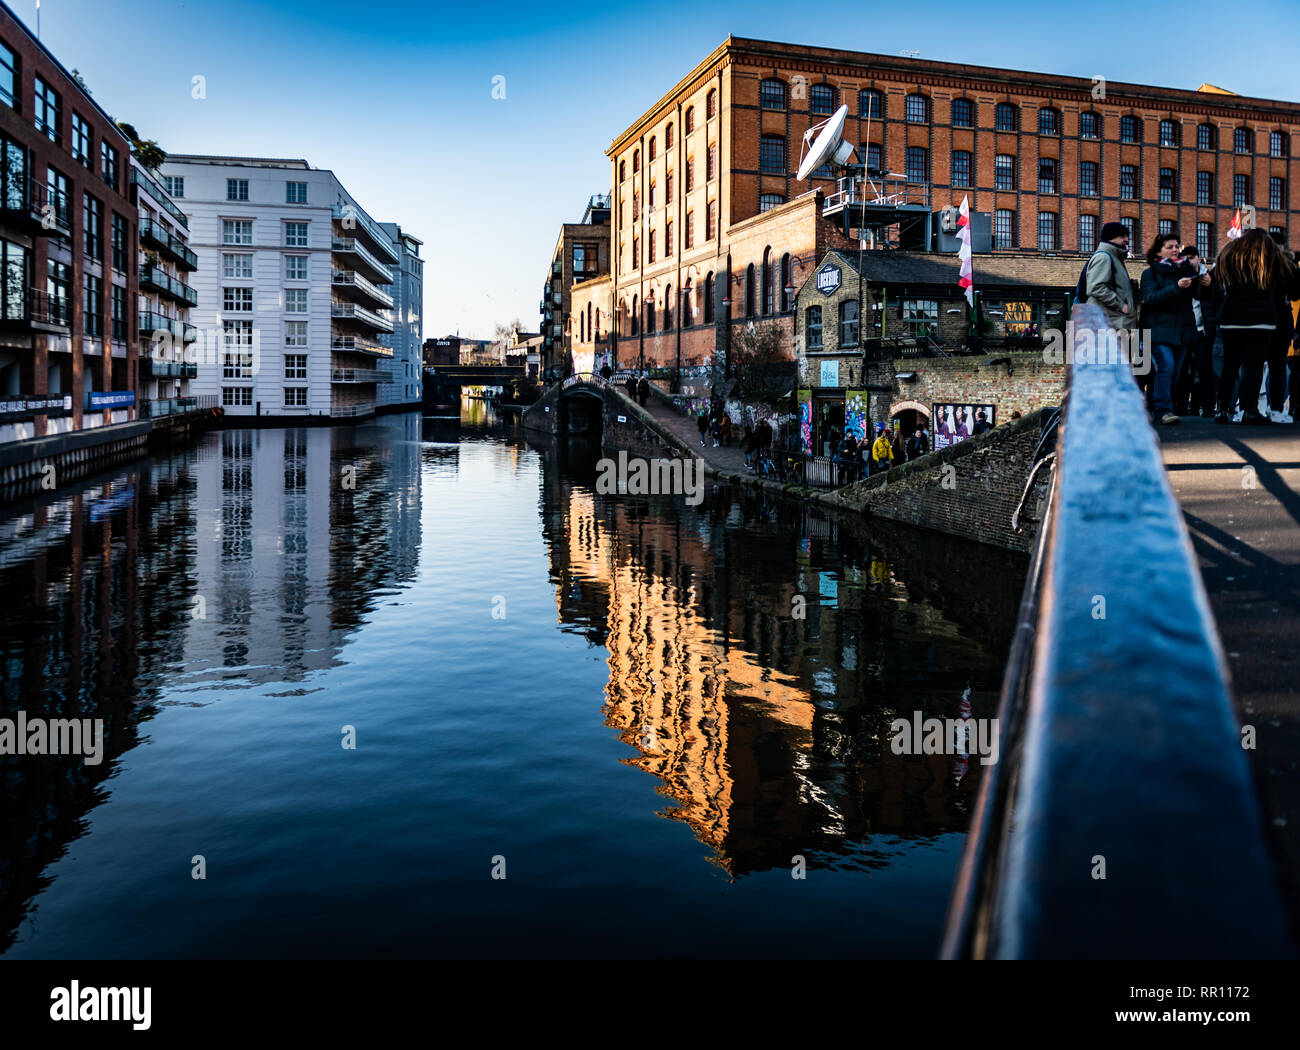 the views of Camden Market from the bridges and overpasses - Stock Image